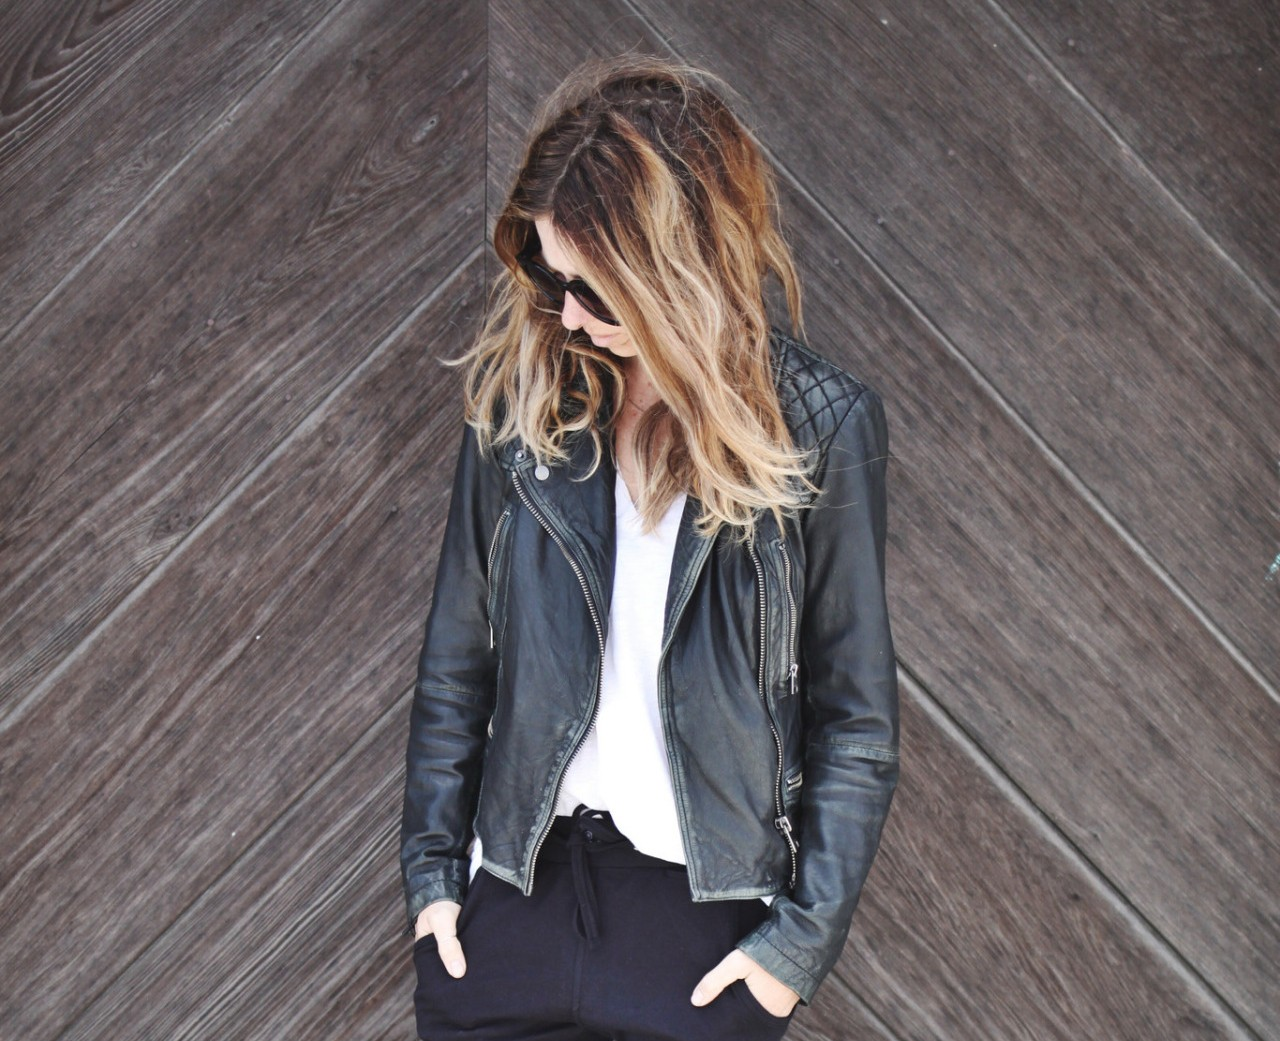 HOW TO WEAR A BIKER JACKET AND LOOK LIKE A LADY